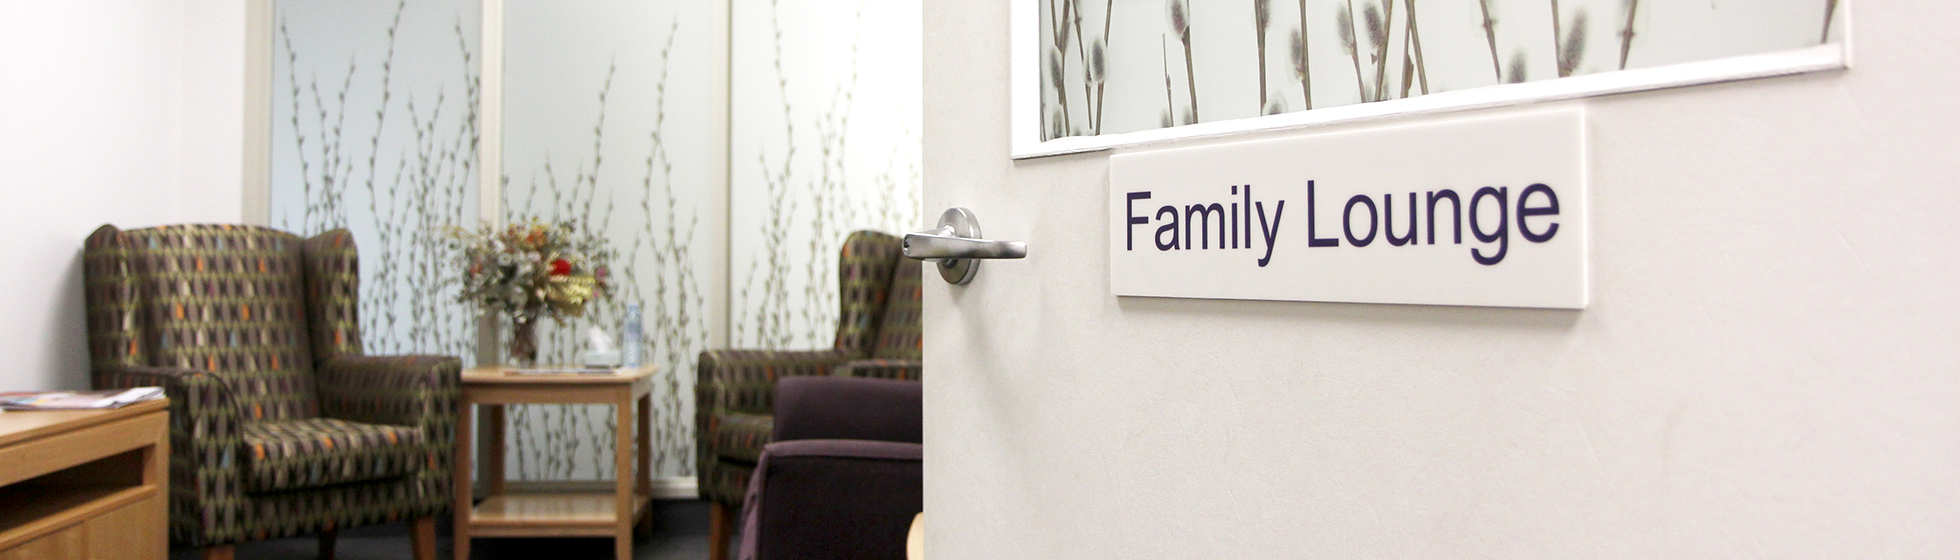 family lounge at north adelaide hospital